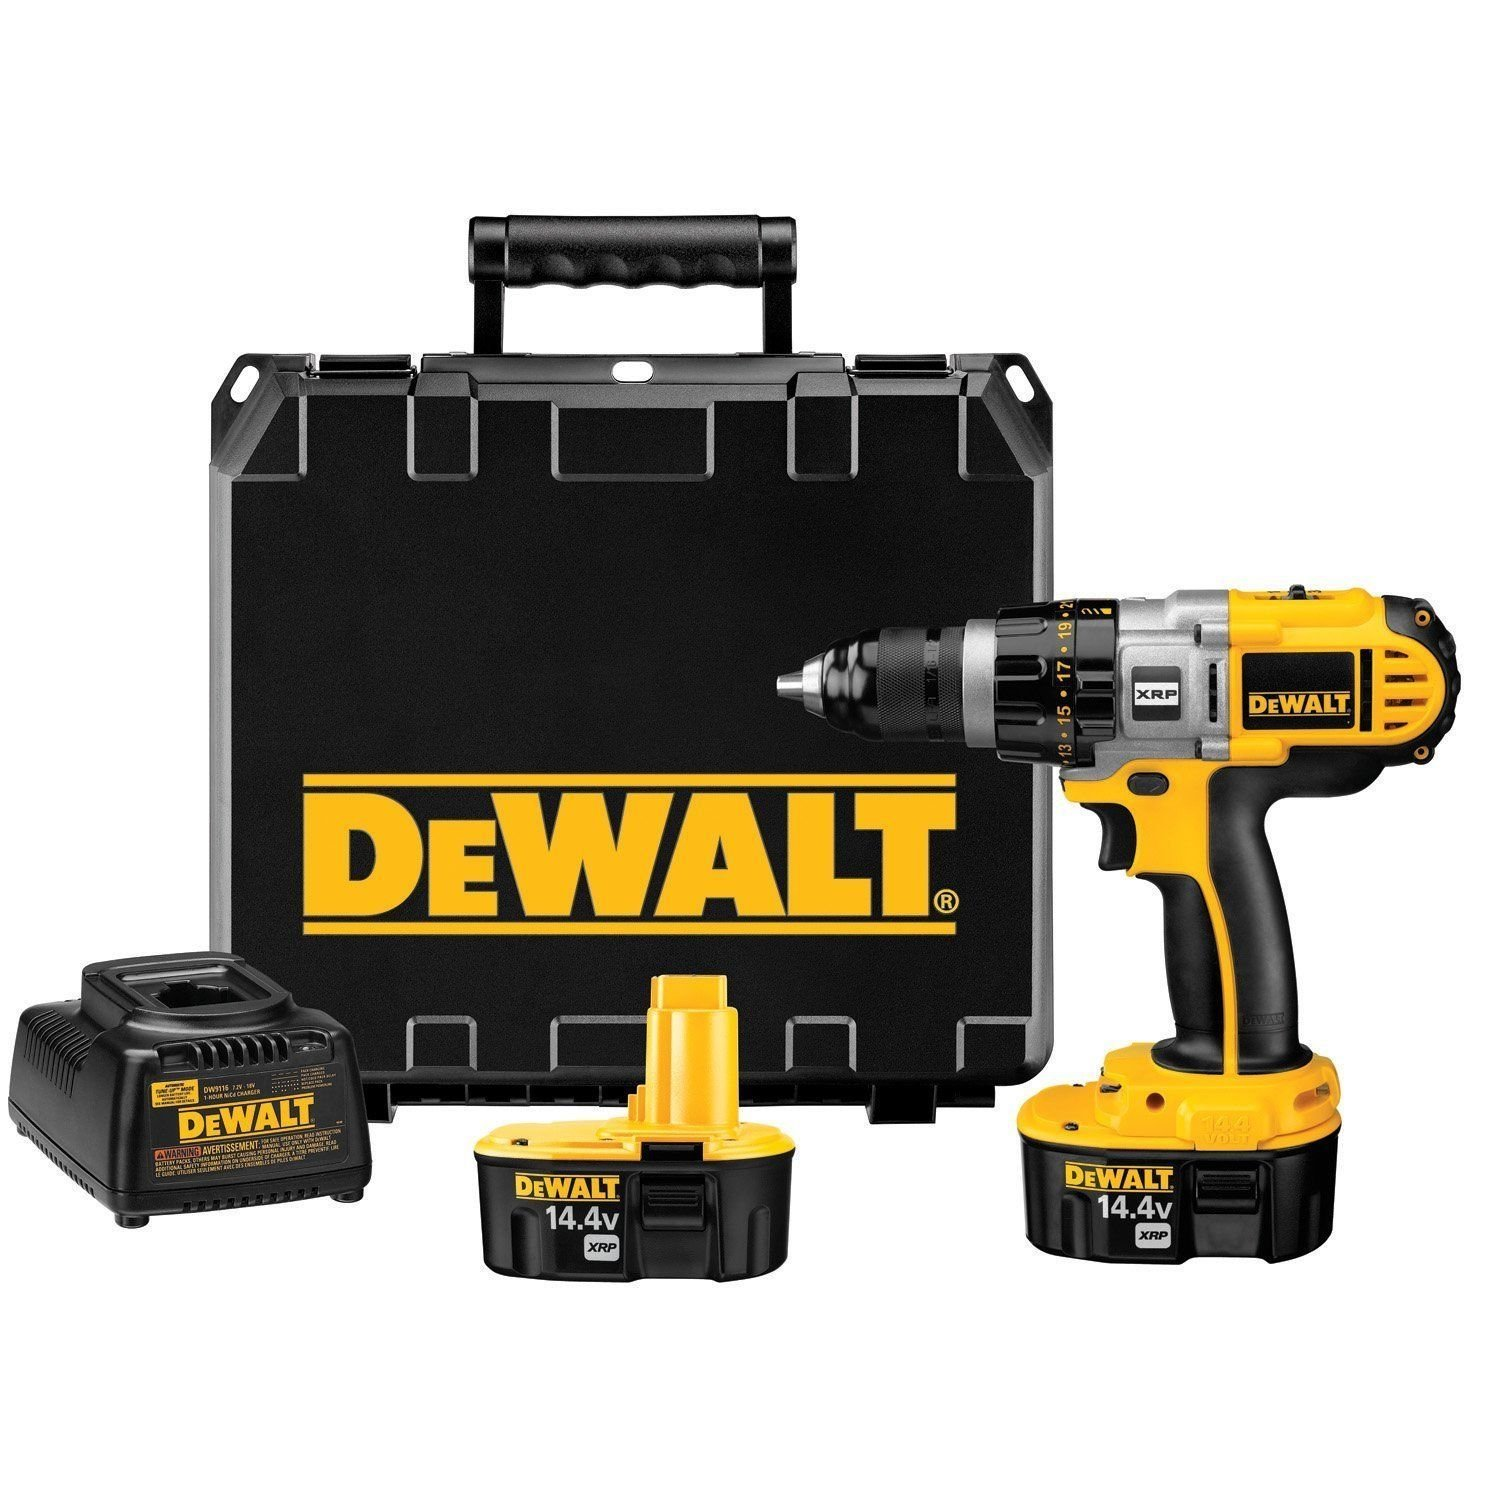 DeWALT DCD920KX 14.4-Volt Ni-Cad XRP Cordless 1/2 in. Drill/Driver Kit NEW ;from#jnw_wholesale__JENT195291749627896